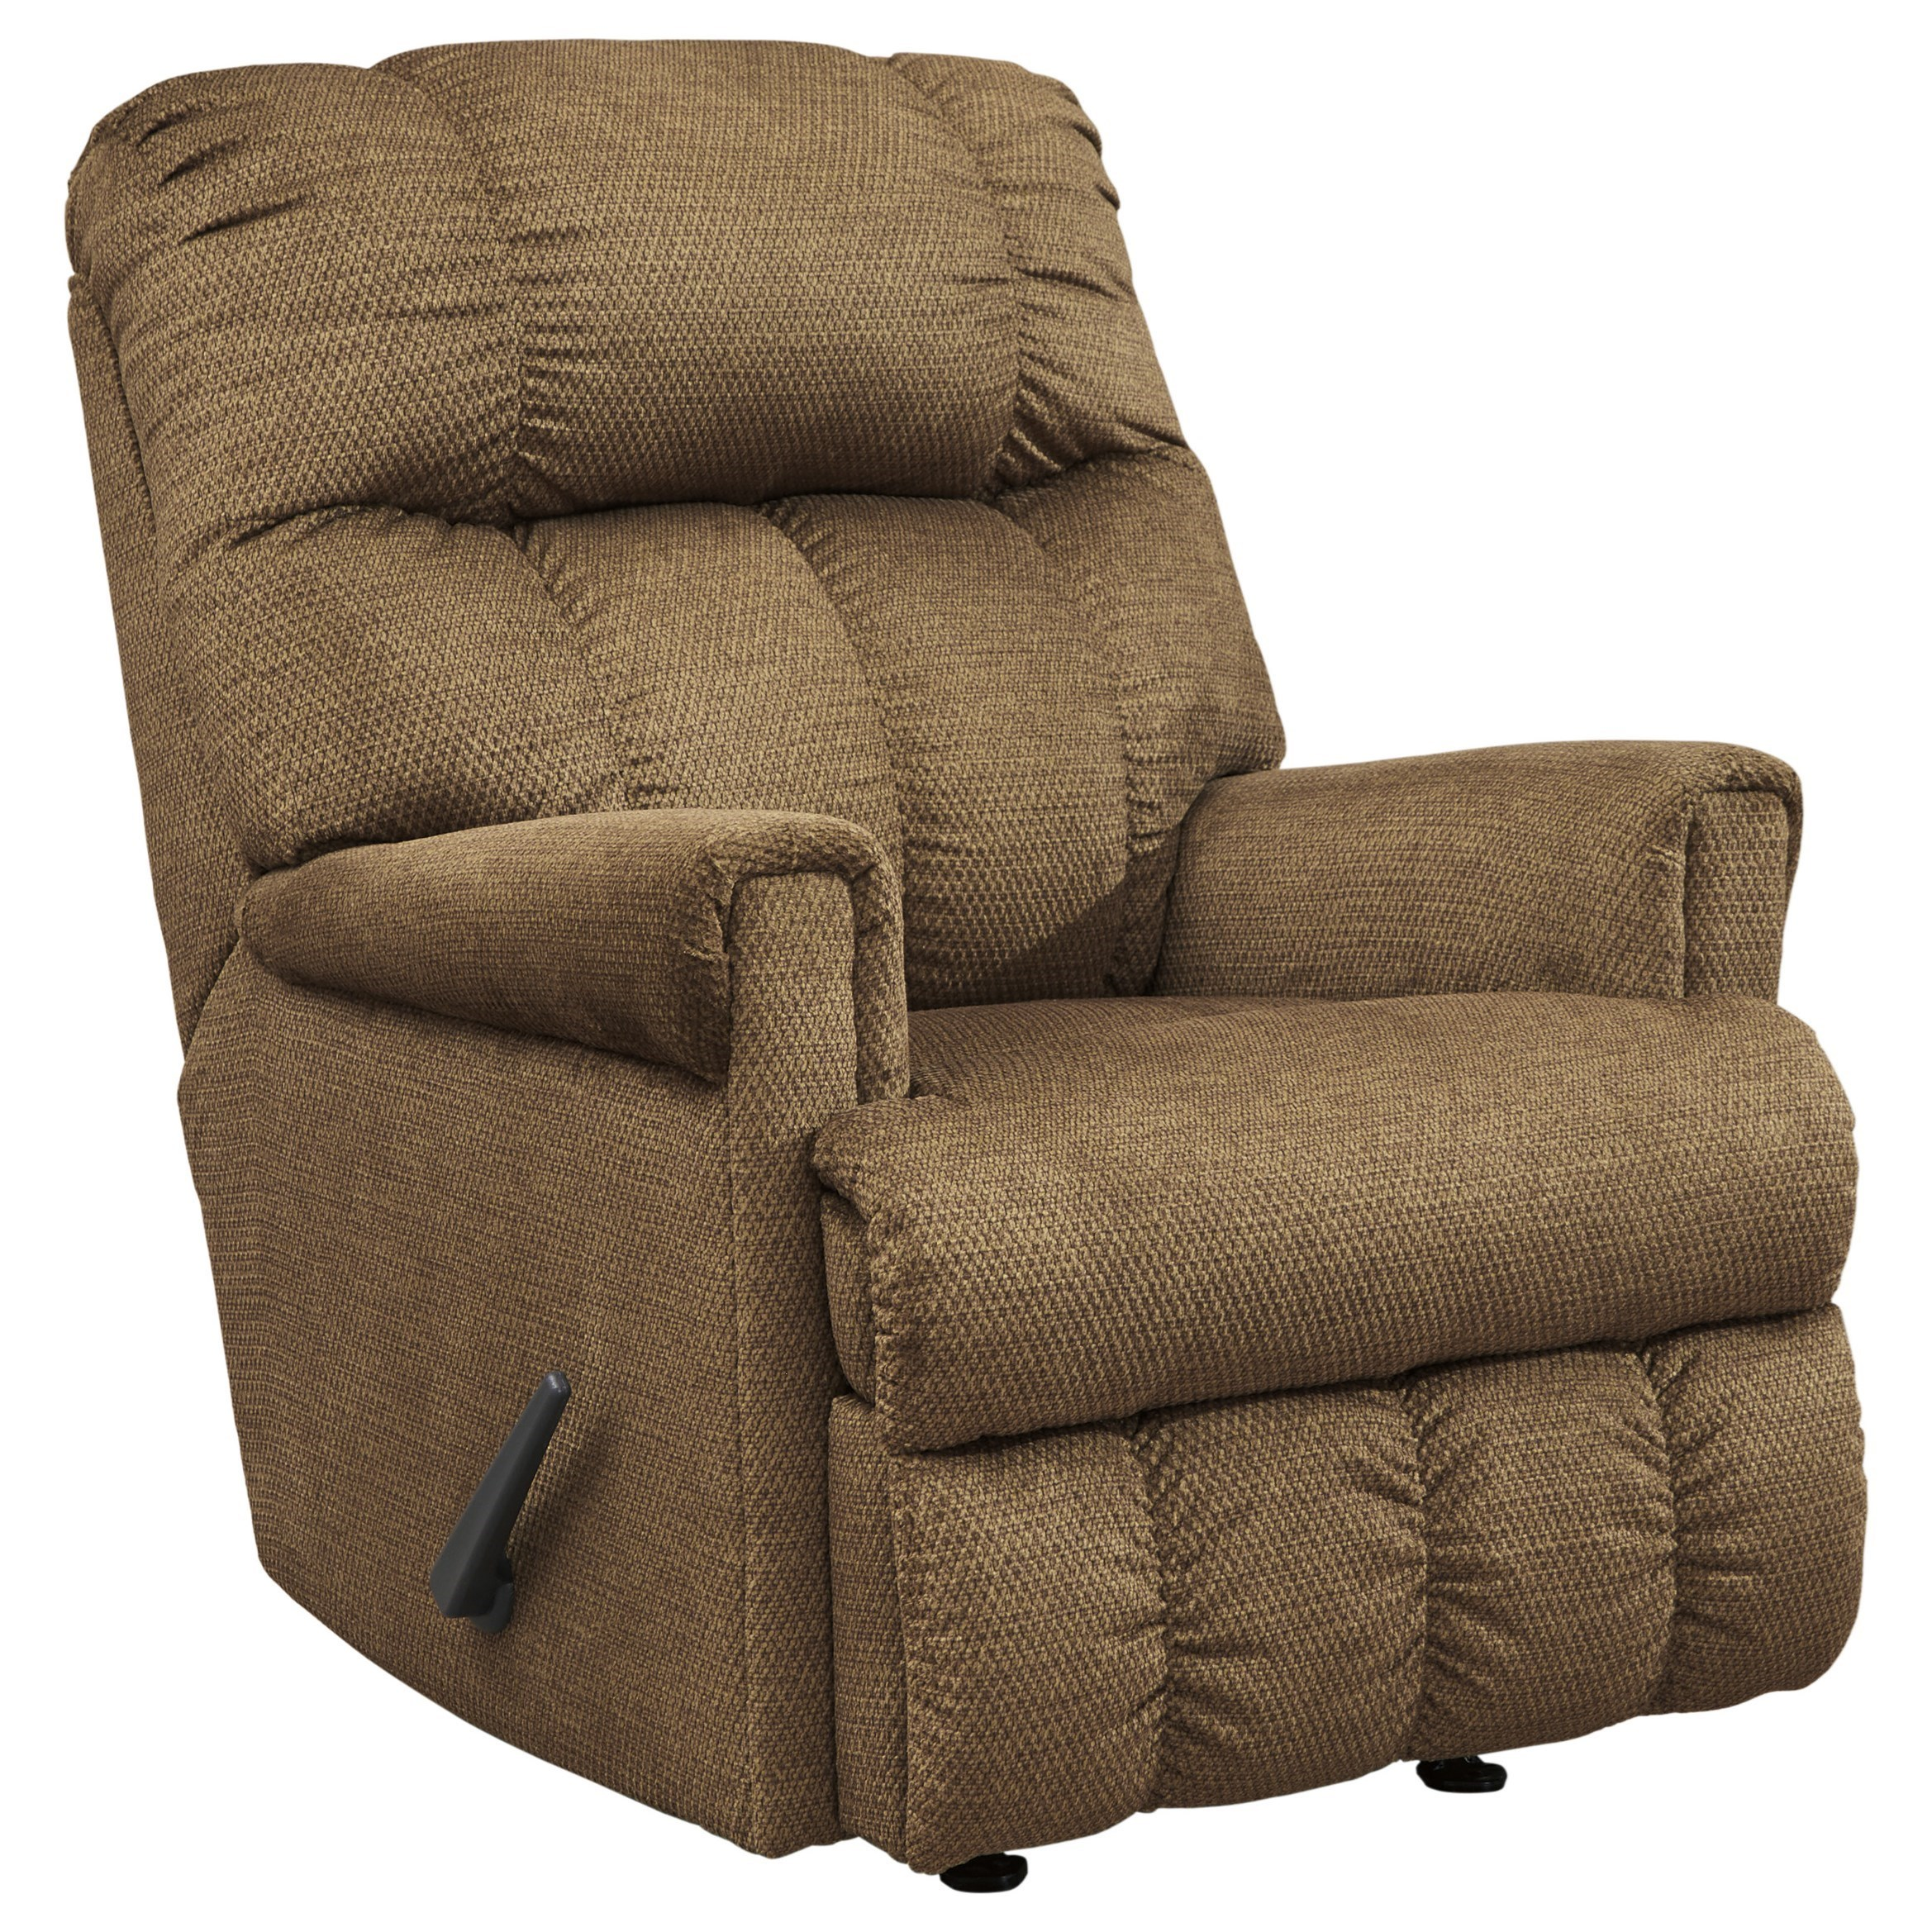 Signature Design by Ashley Craggly Rocker Recliner - Item Number: 3680325